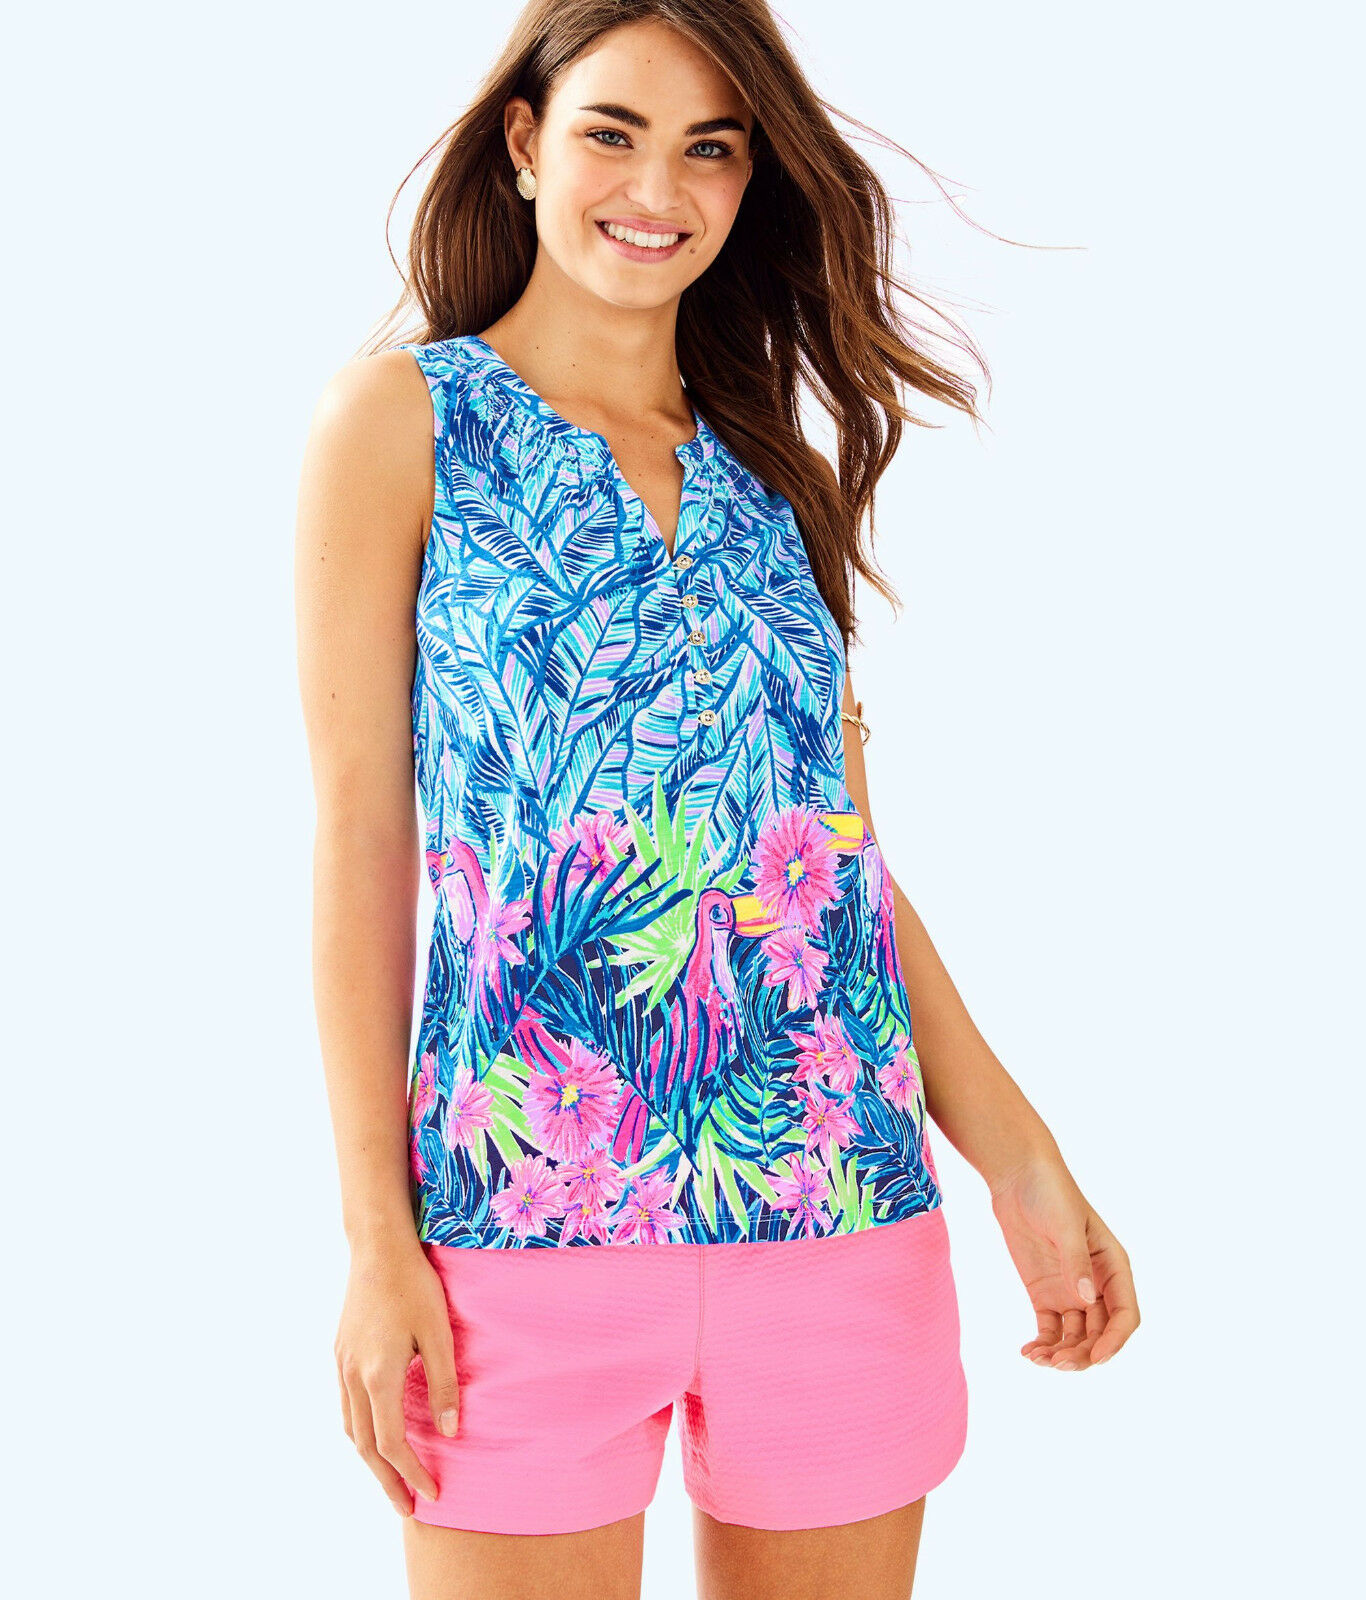 Lilly Pulitzer NWT Essie Top in Bennet Blau Lets Mango Engineerot